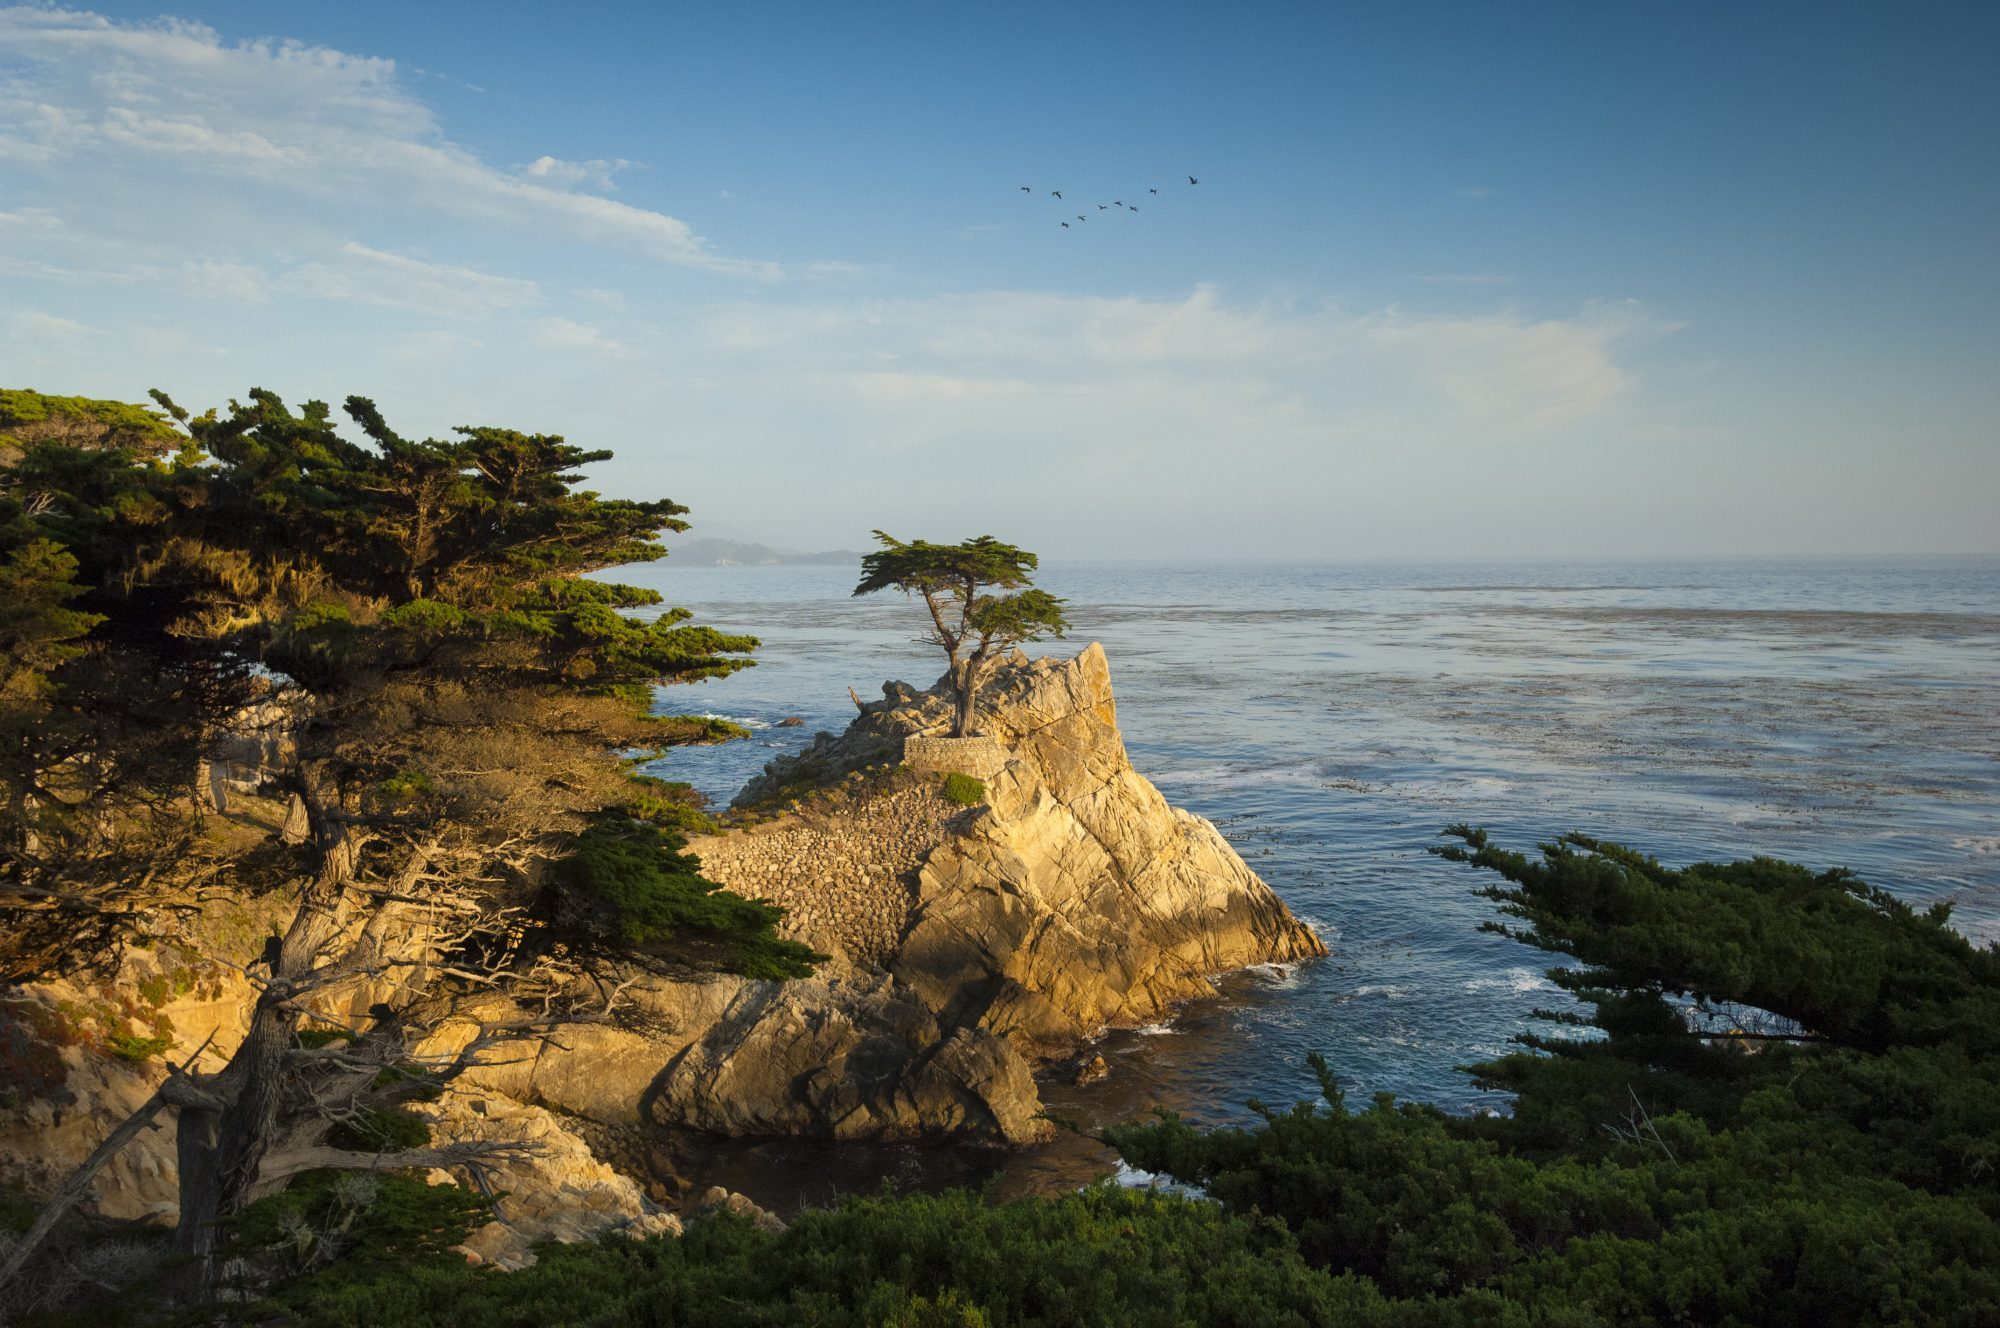 distant view of the Lone Cypress tree along shoreline